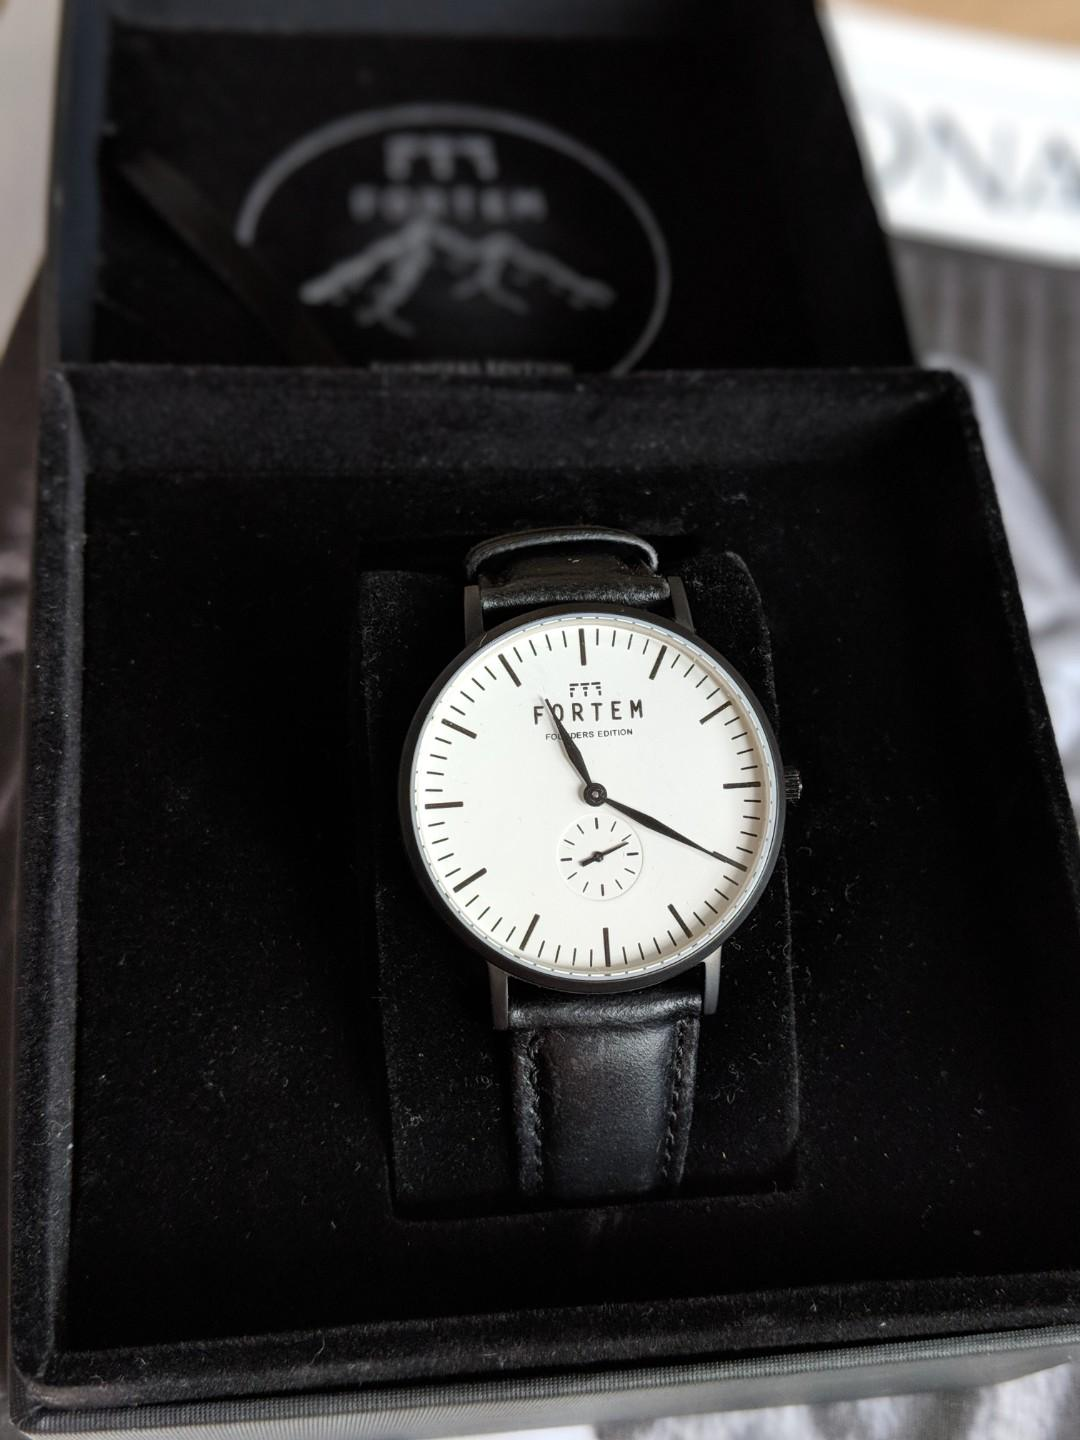 New in Box - Fortem leather watch - unisex